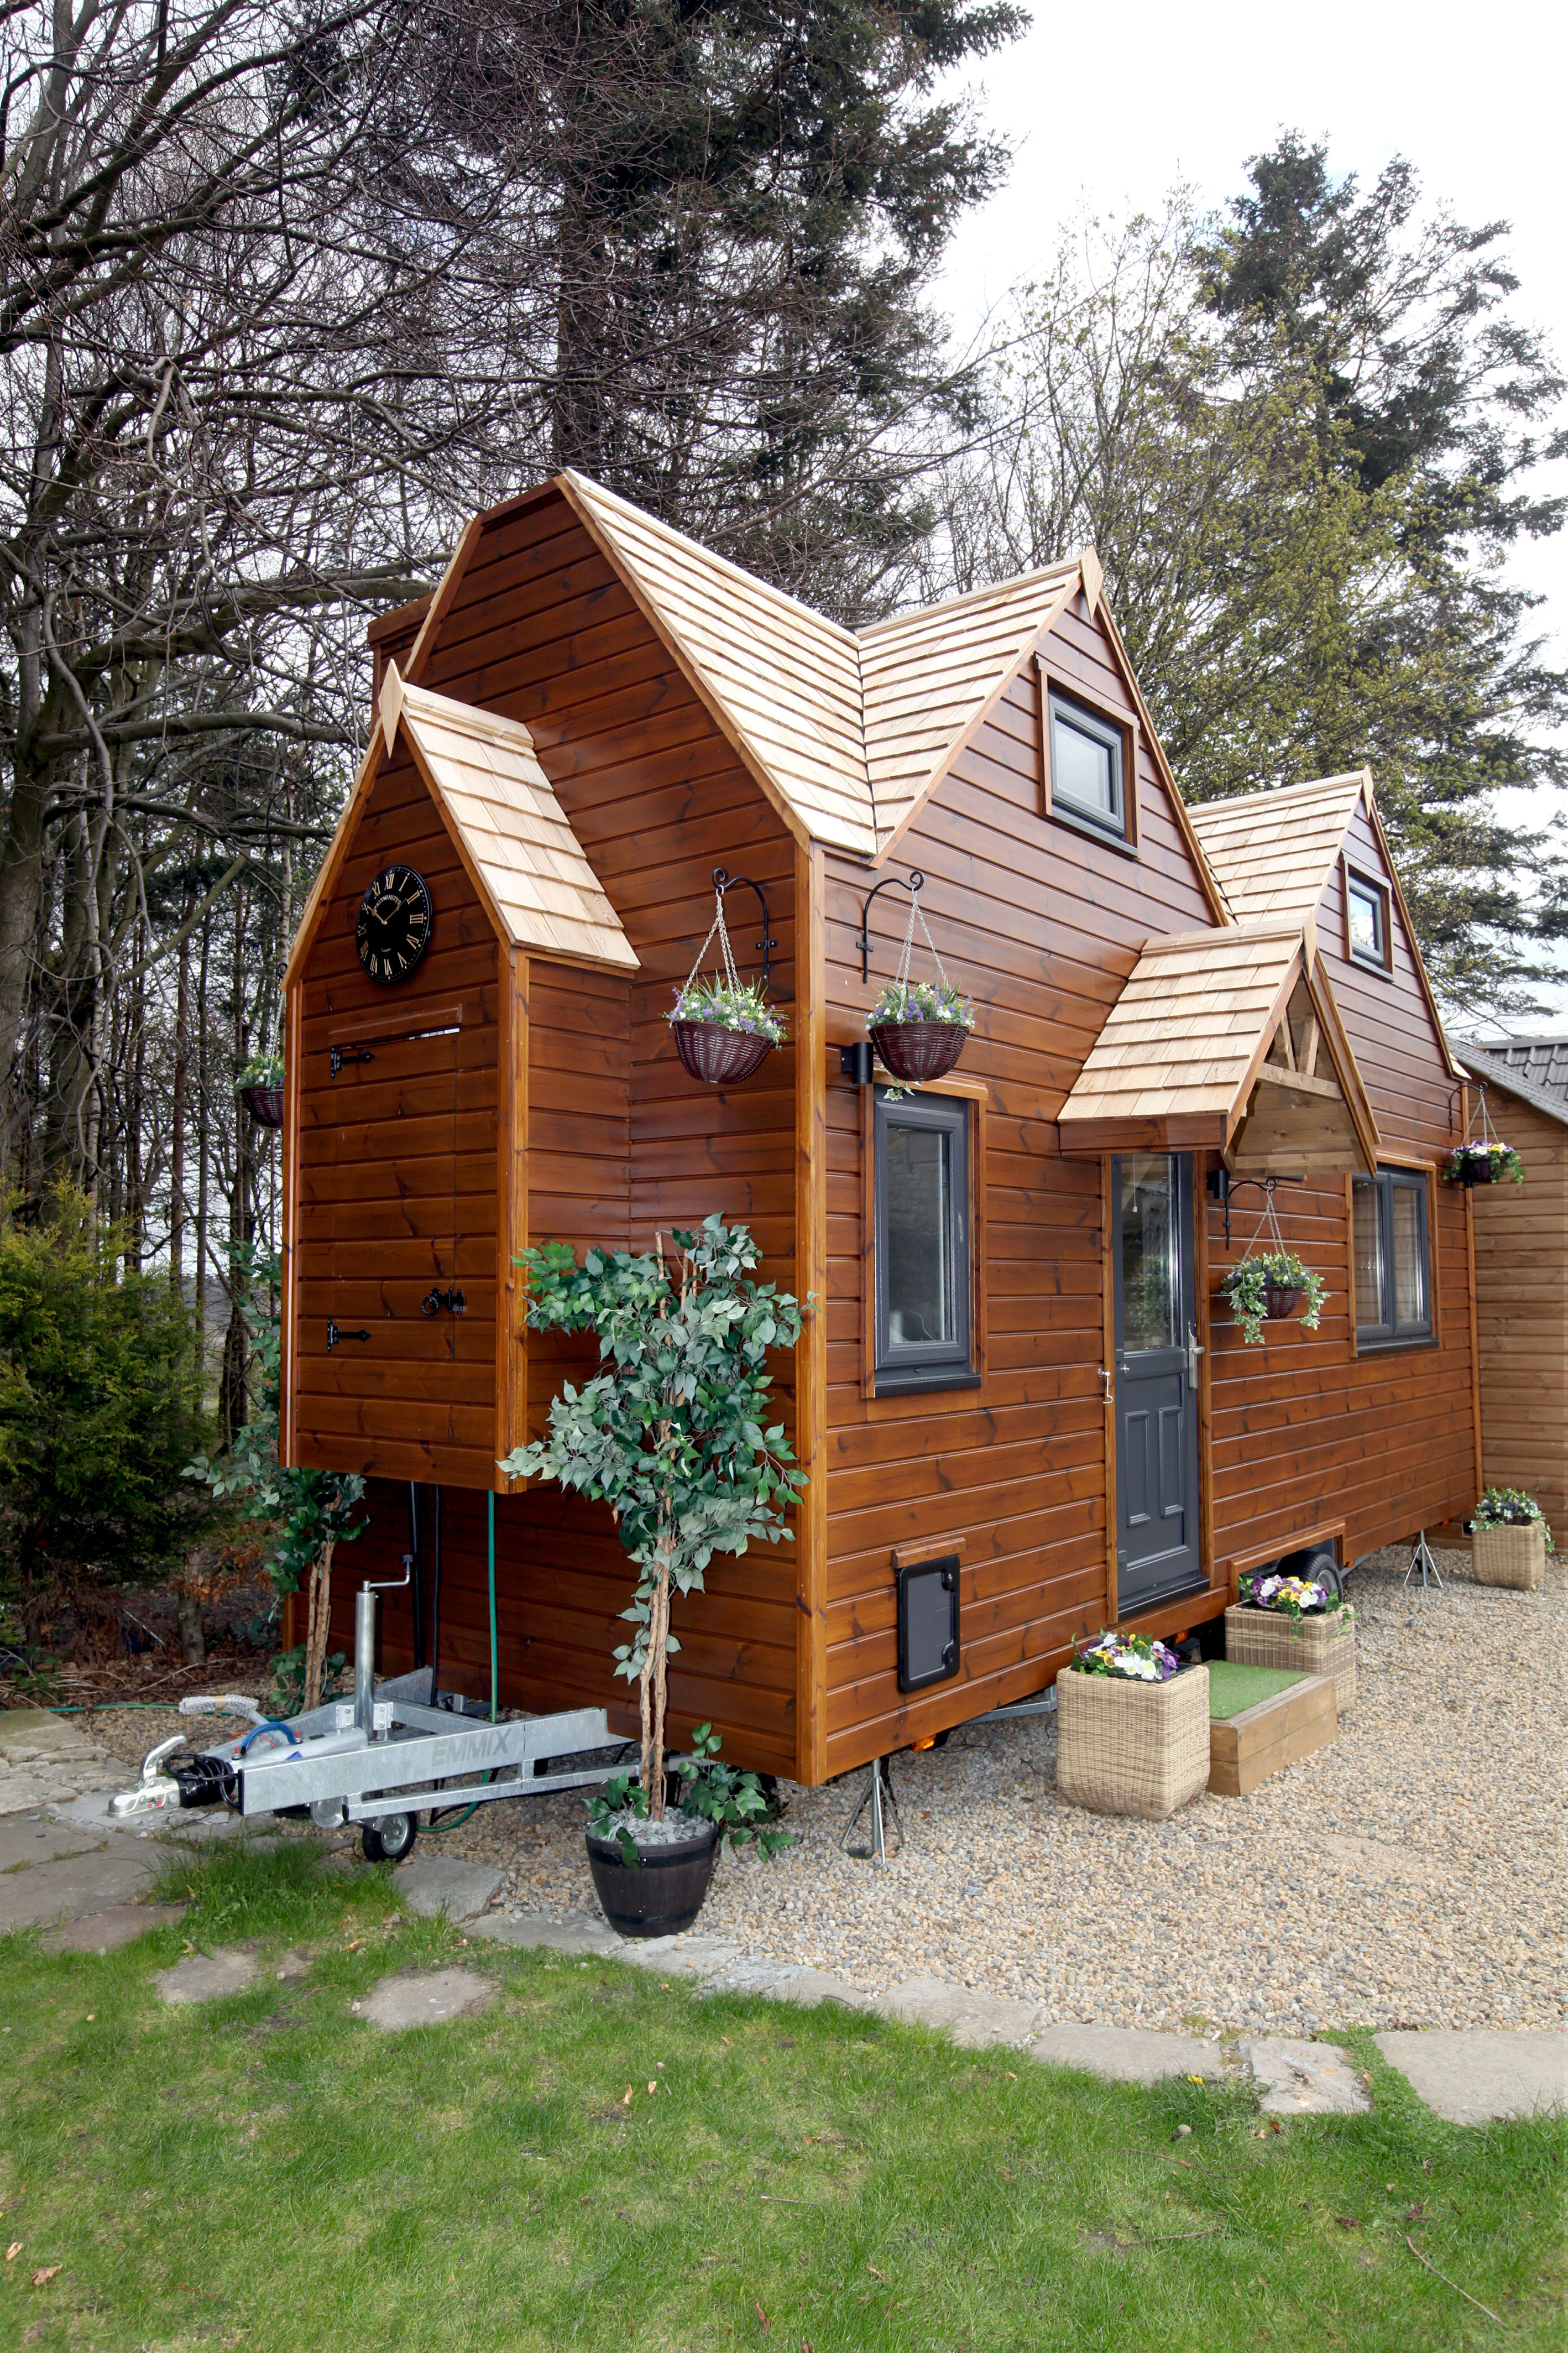 Man Saves 1 000 Each Month By Living In Self Built Eco Home